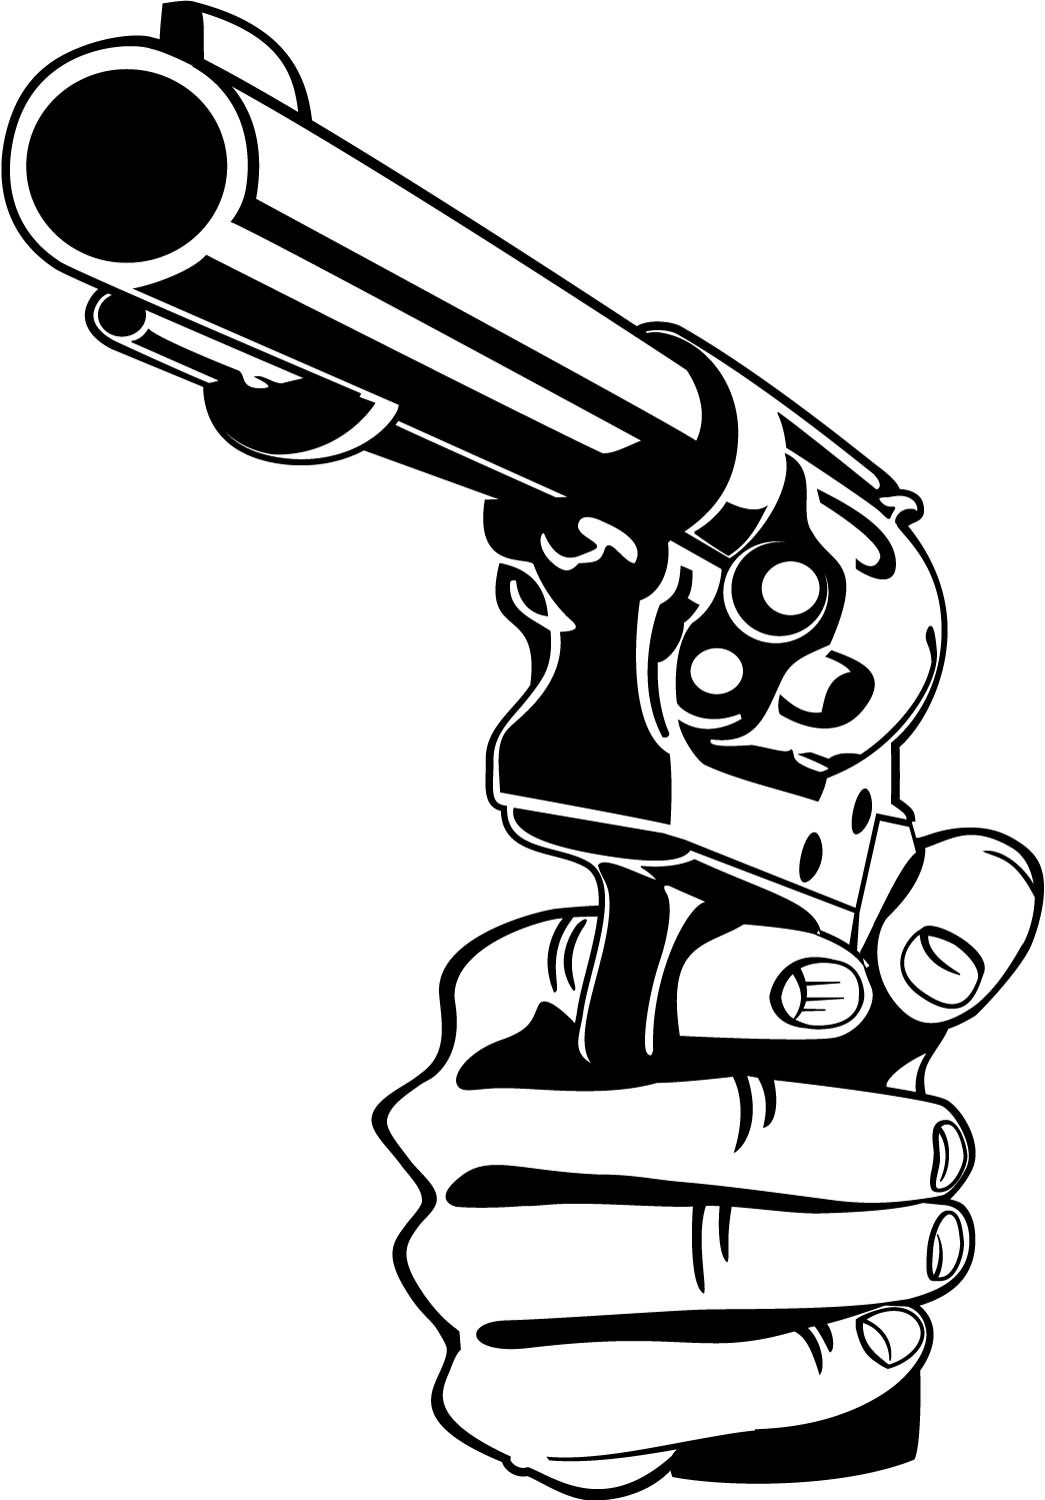 Gun Shot clipart police gun In Times of  News